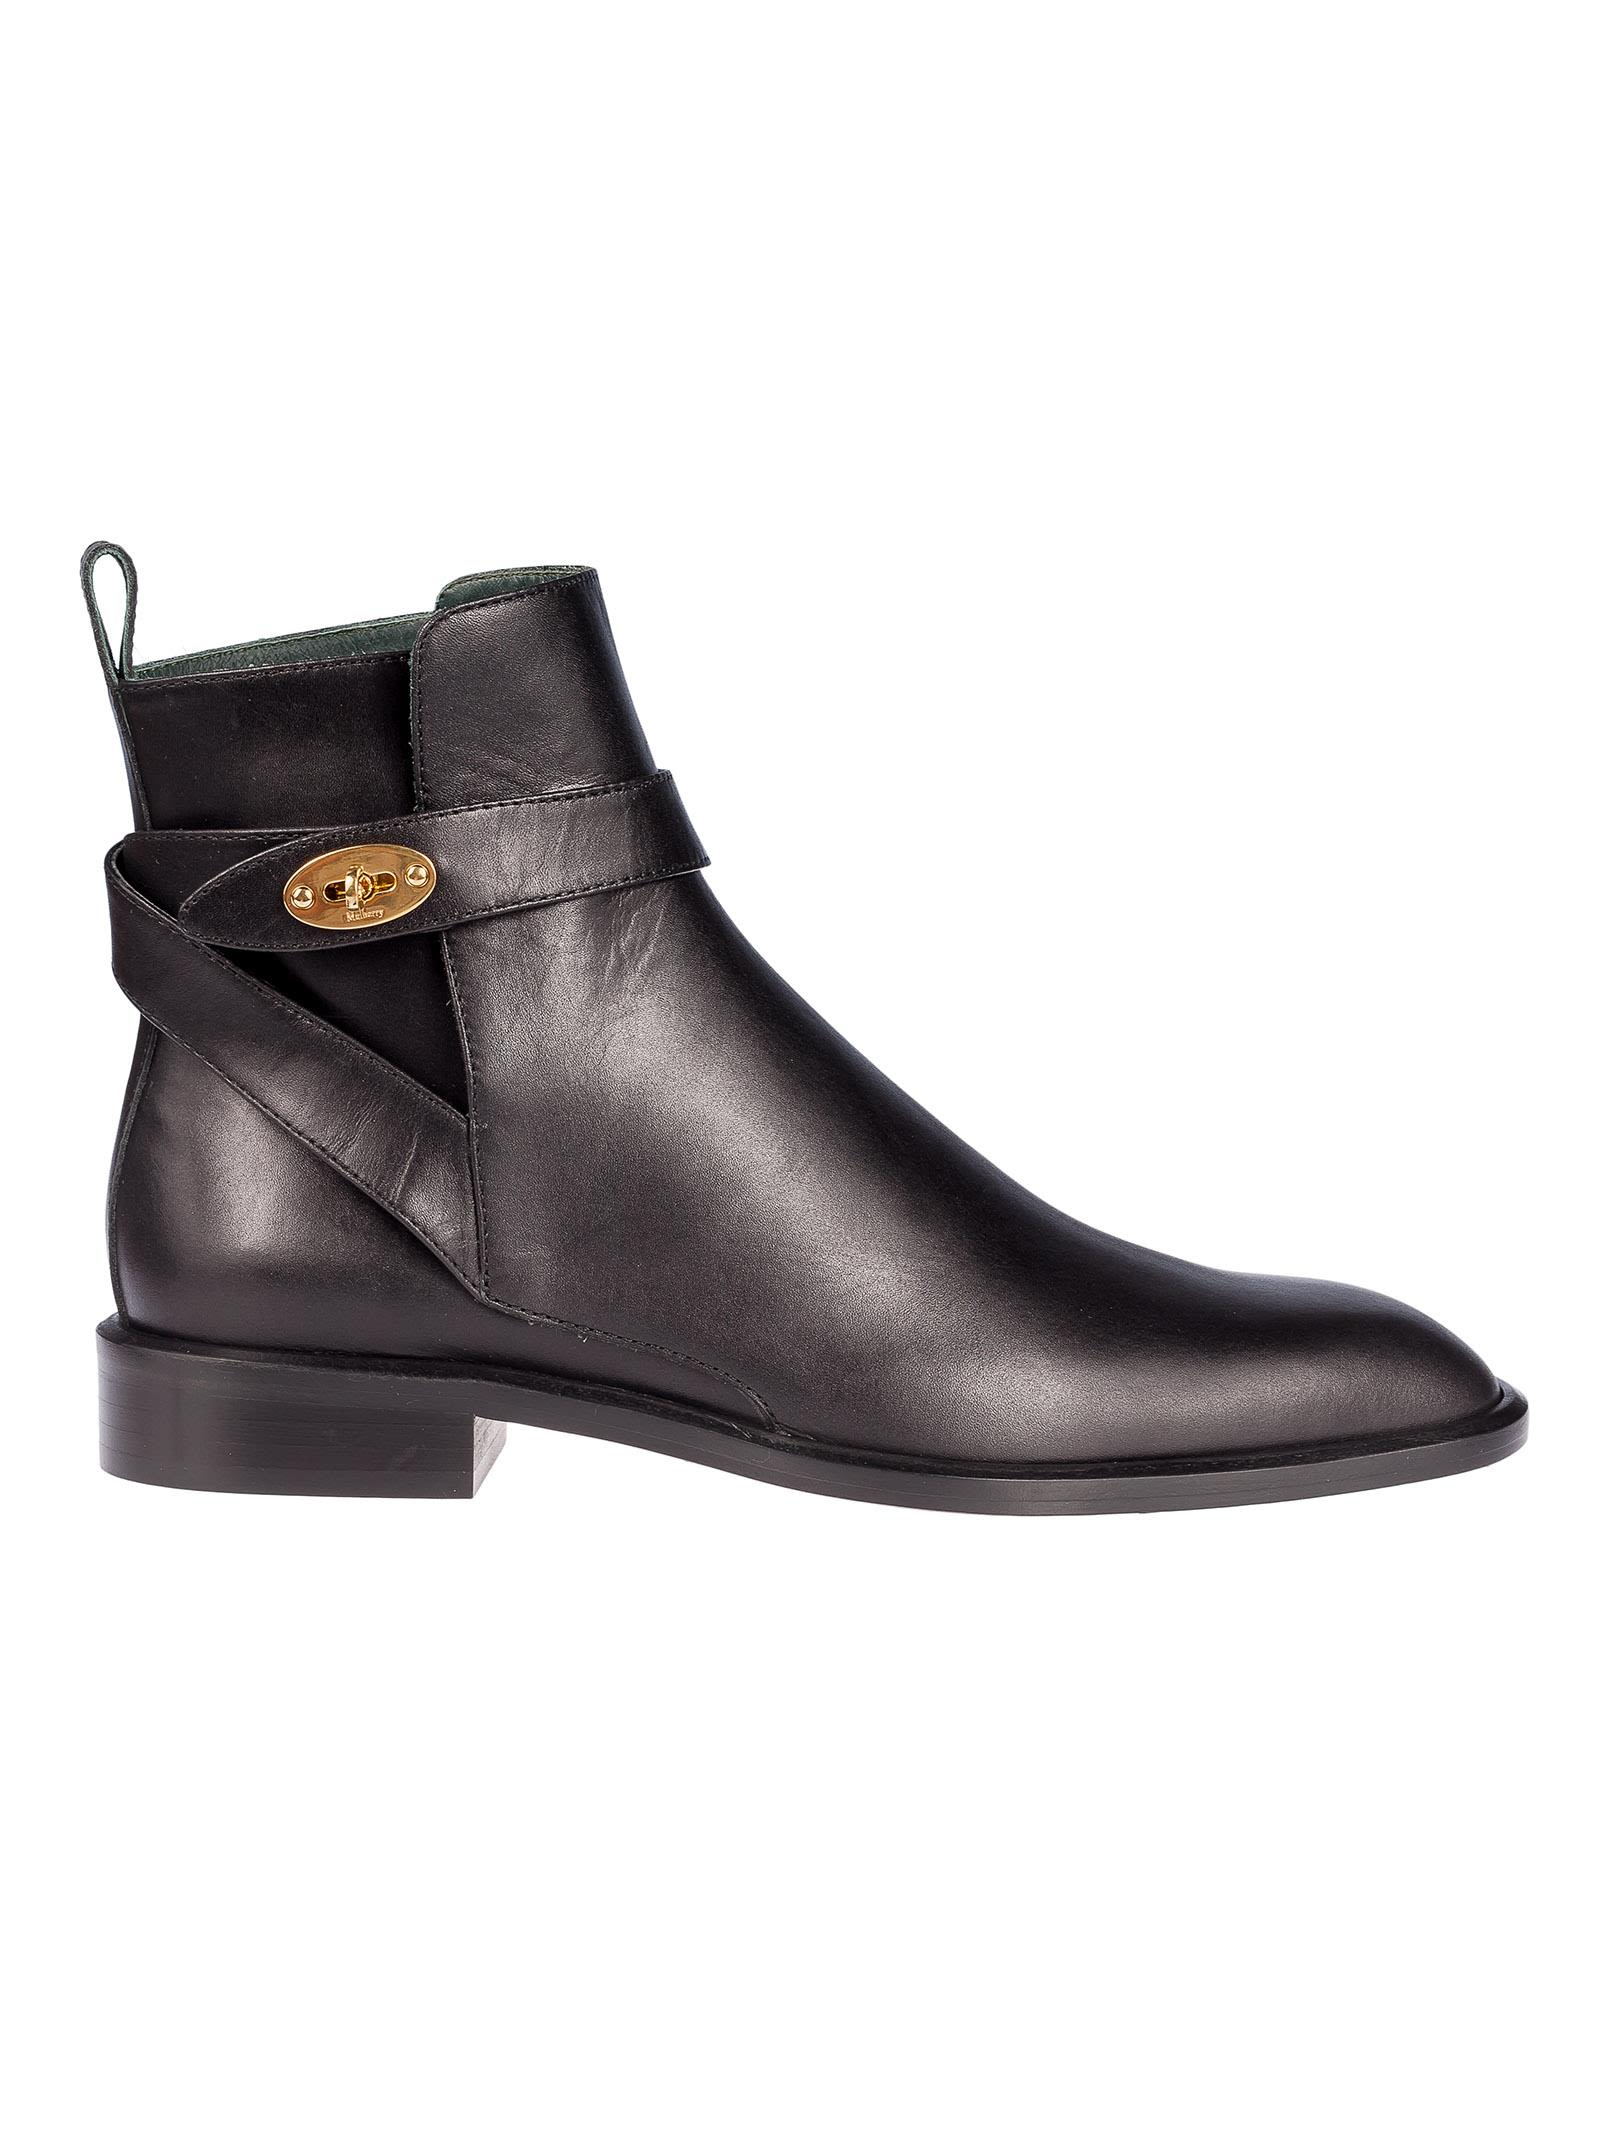 Mulberry Jodhpur Flat Ankle Boots